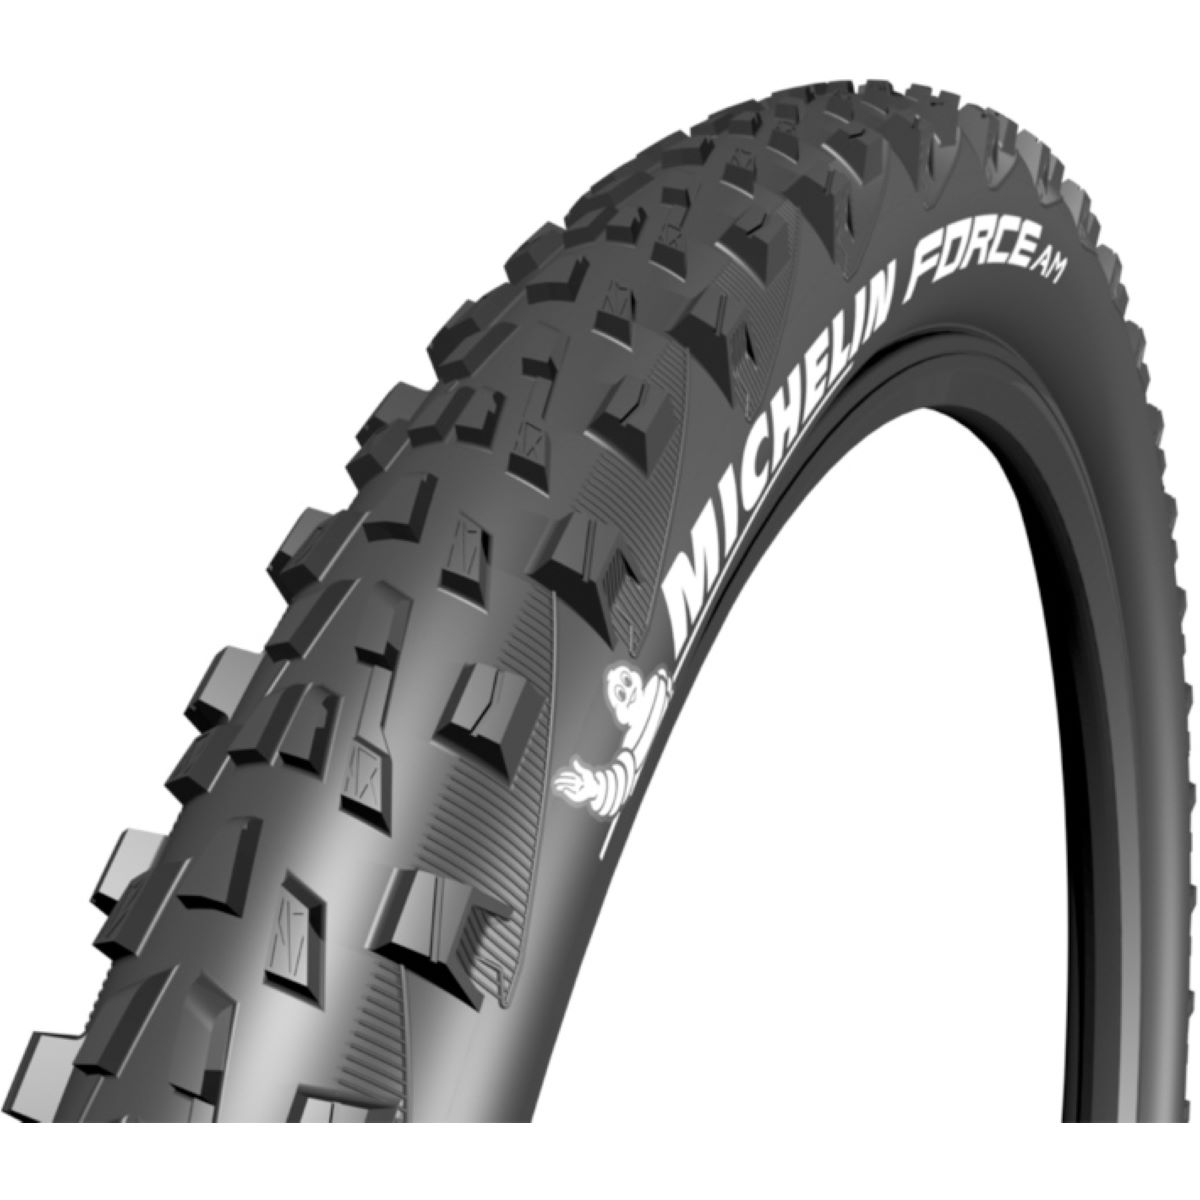 Pneu VTT Michelin Force AM Competition - 2.6' 27.5' Noir Pneus